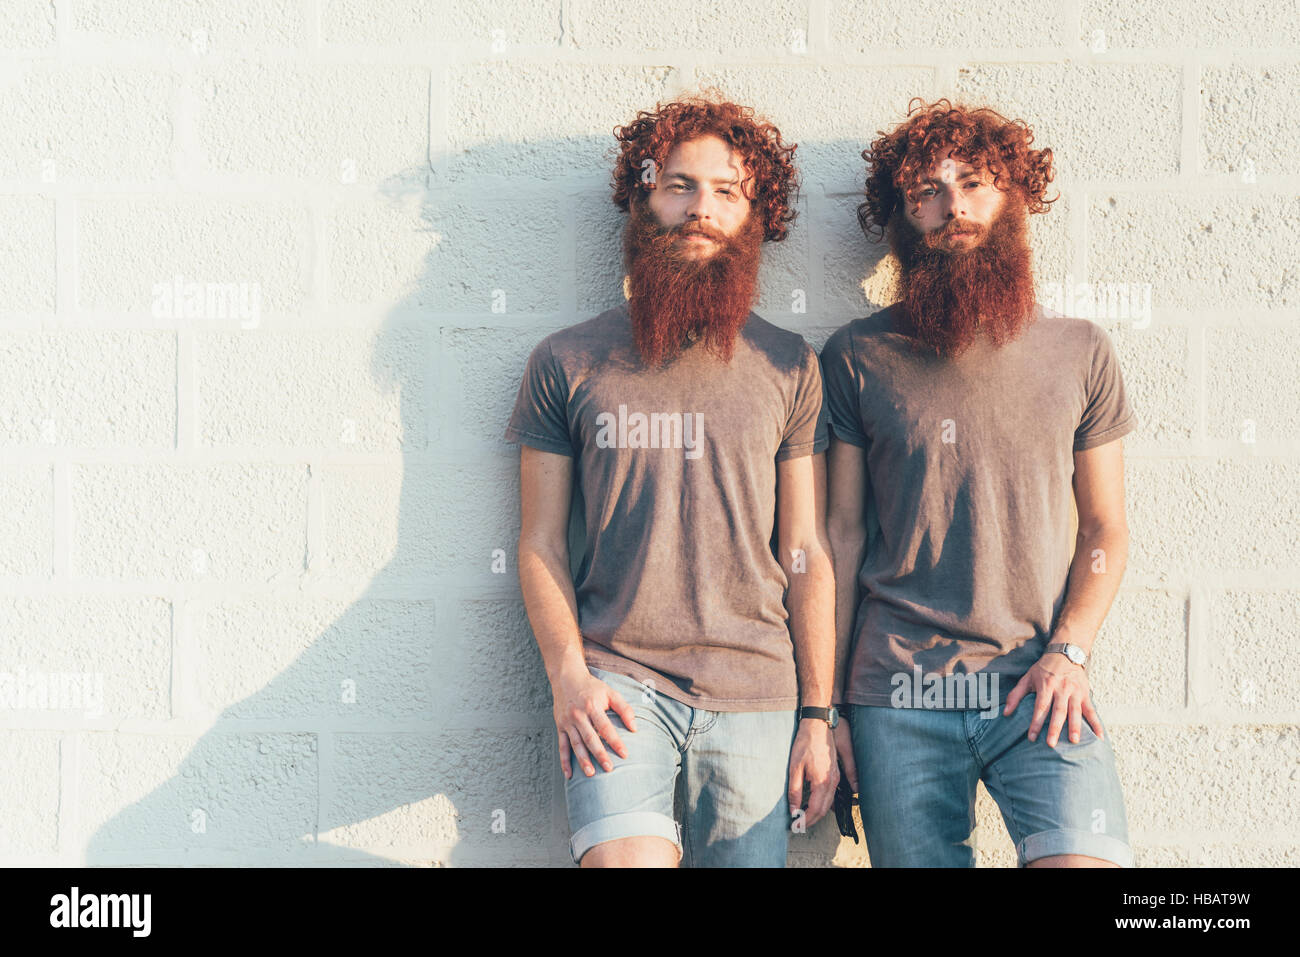 Portrait of identical adult male twins with red hair and beards against wall Stock Photo